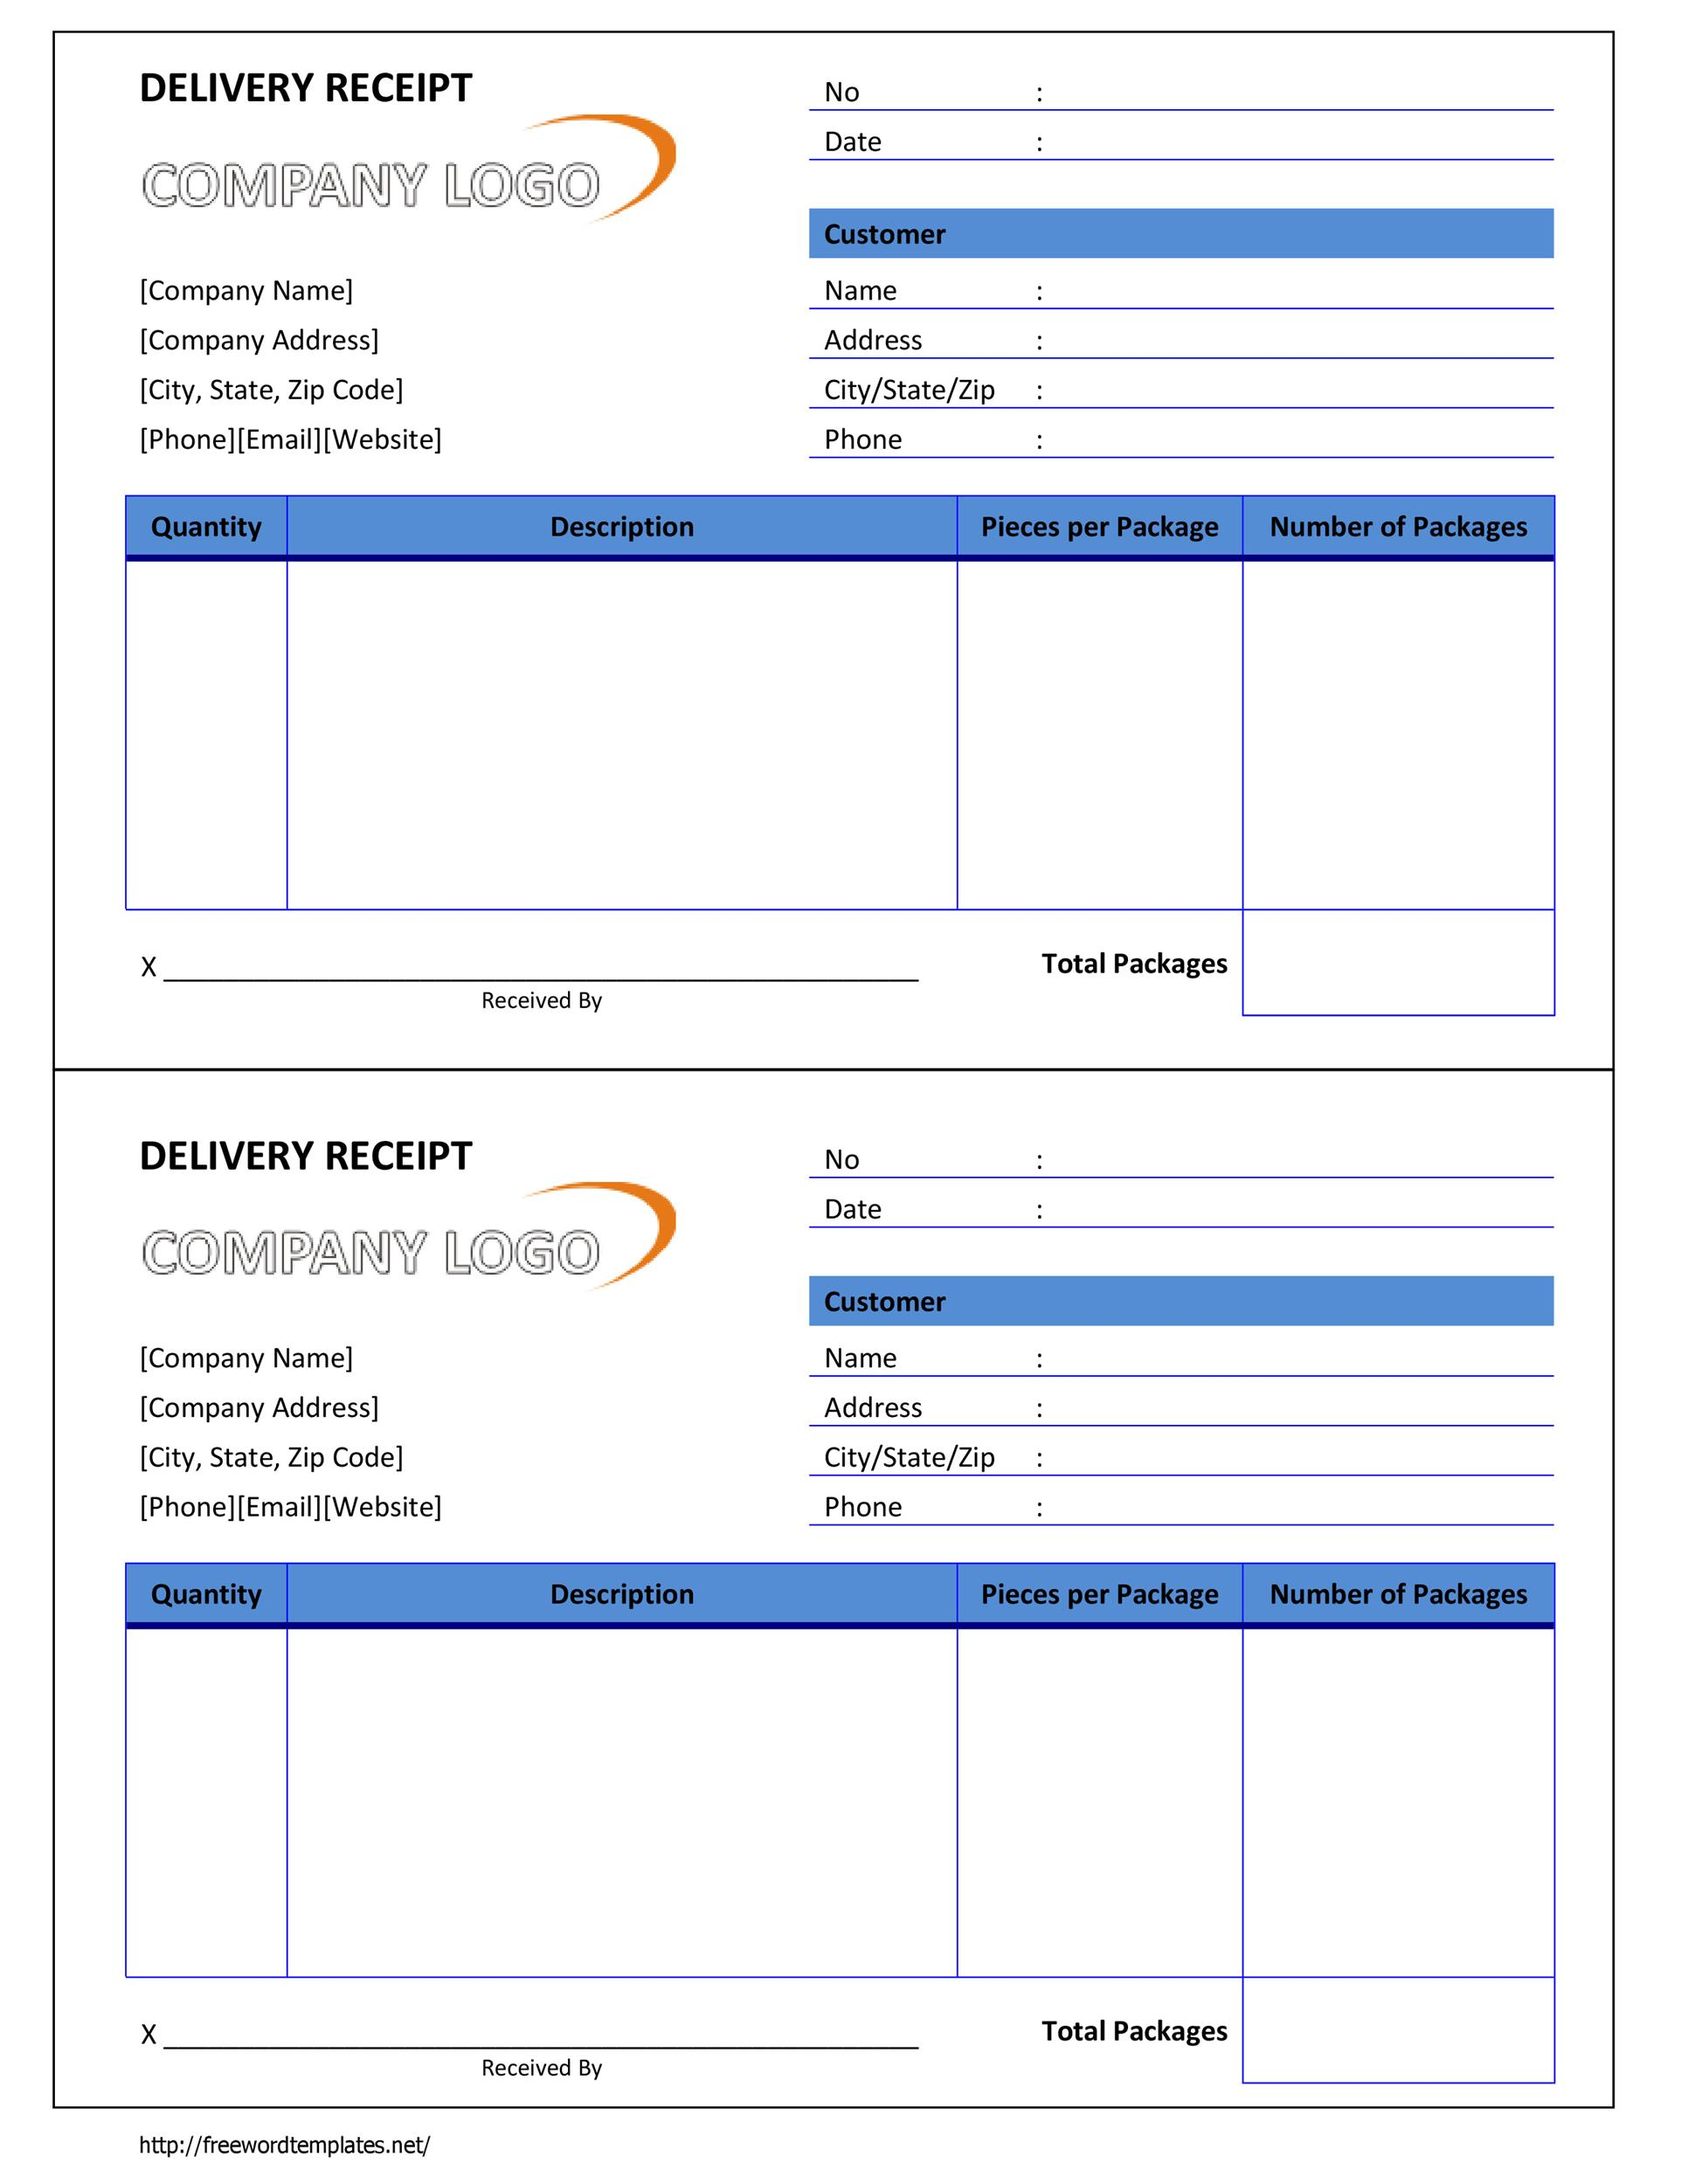 Printable Delivery Receipt Template Word  Customer Receipt Template Word